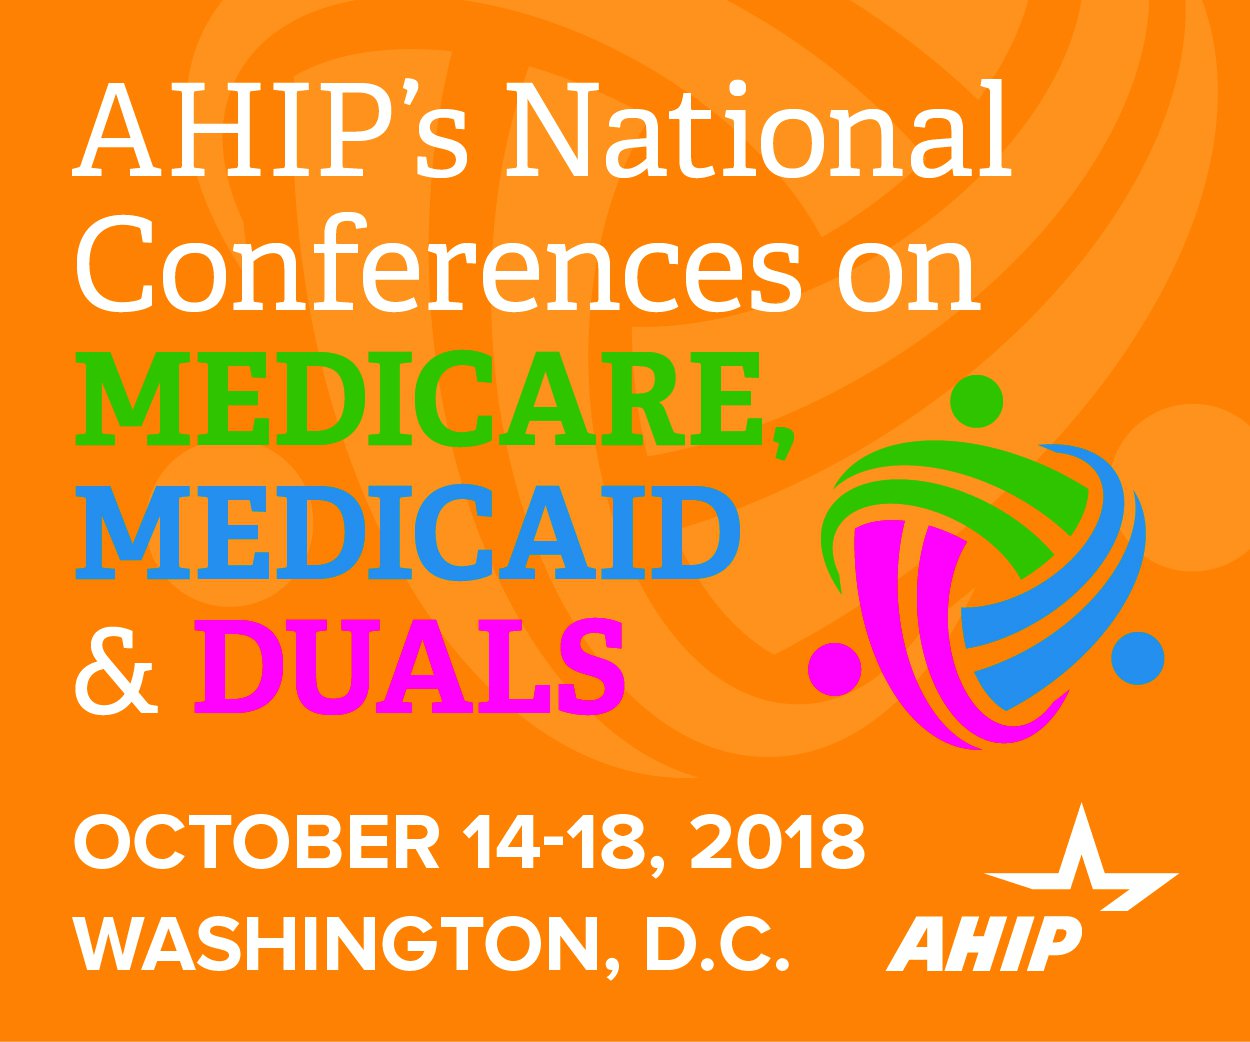 AHIP's National Conferences on Medicare, Medicaid & Duals